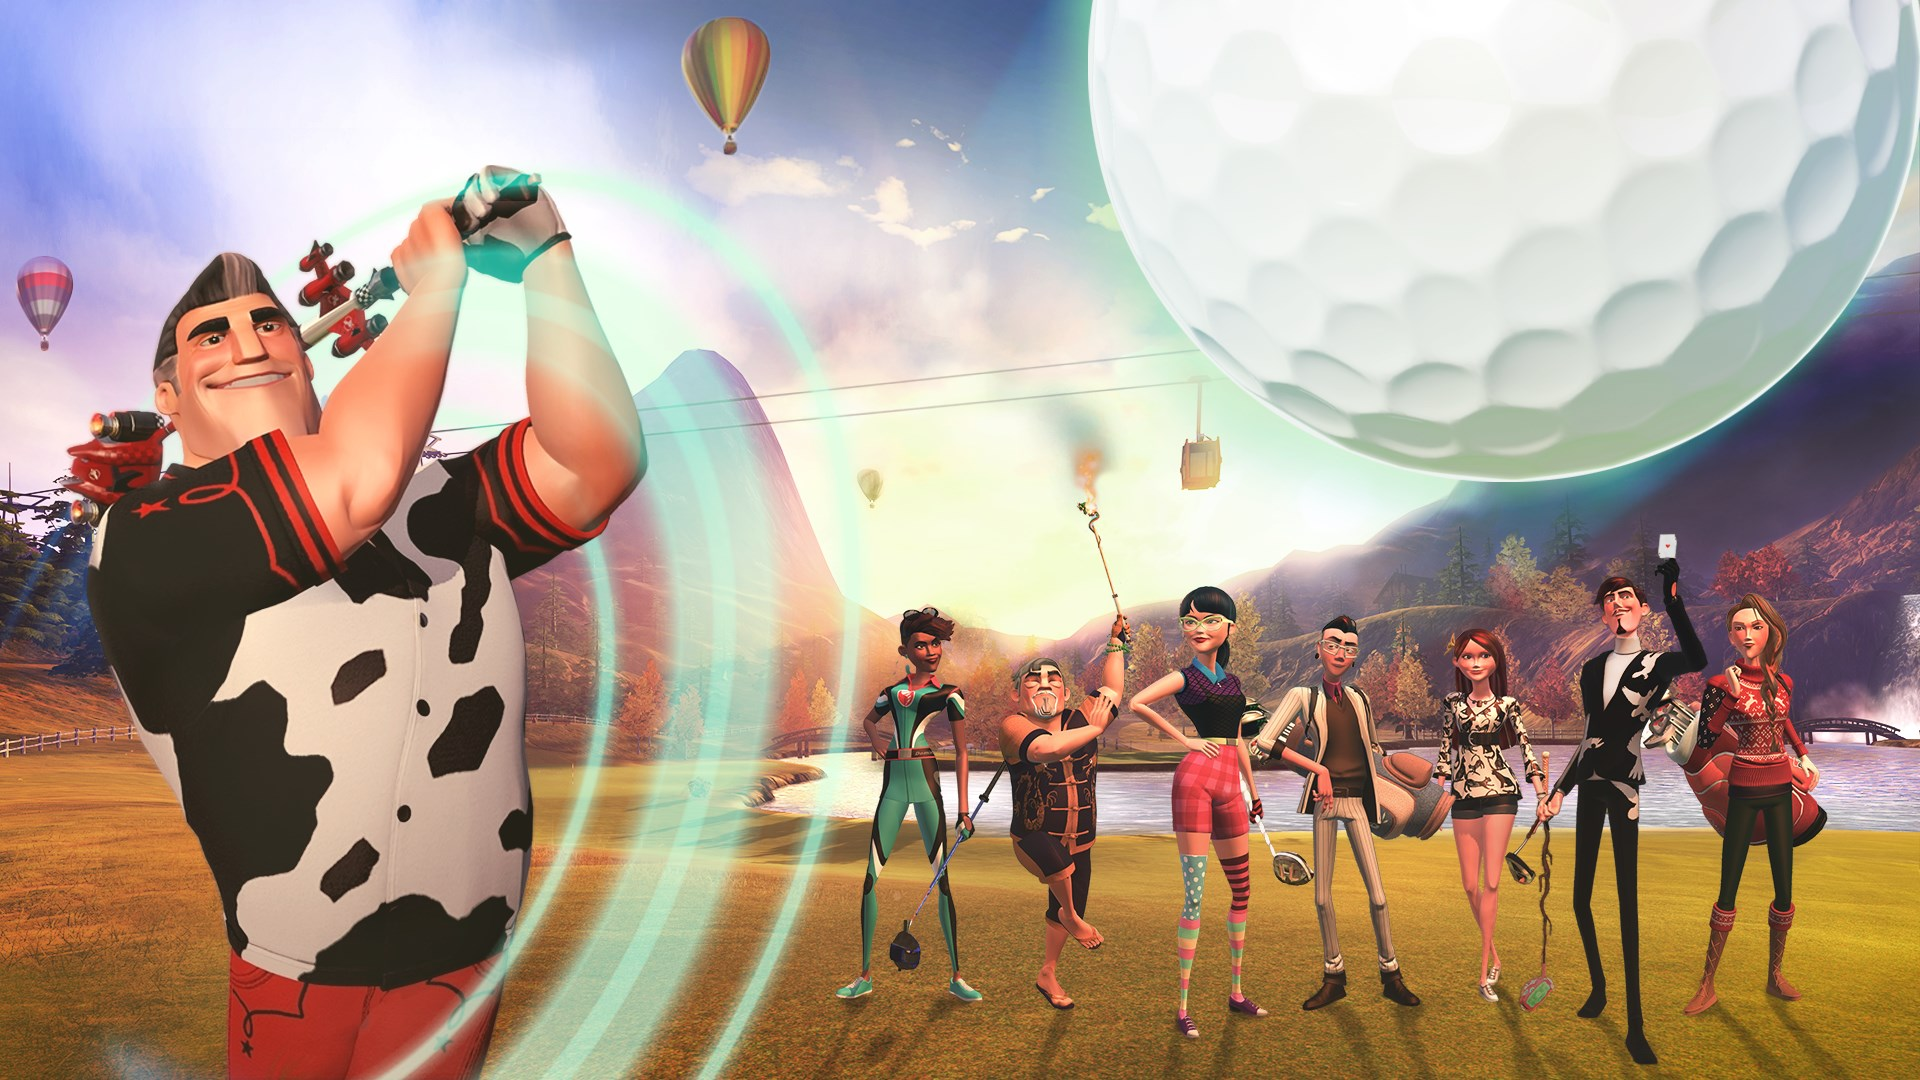 Powerstar Golf - Full Game Unlock